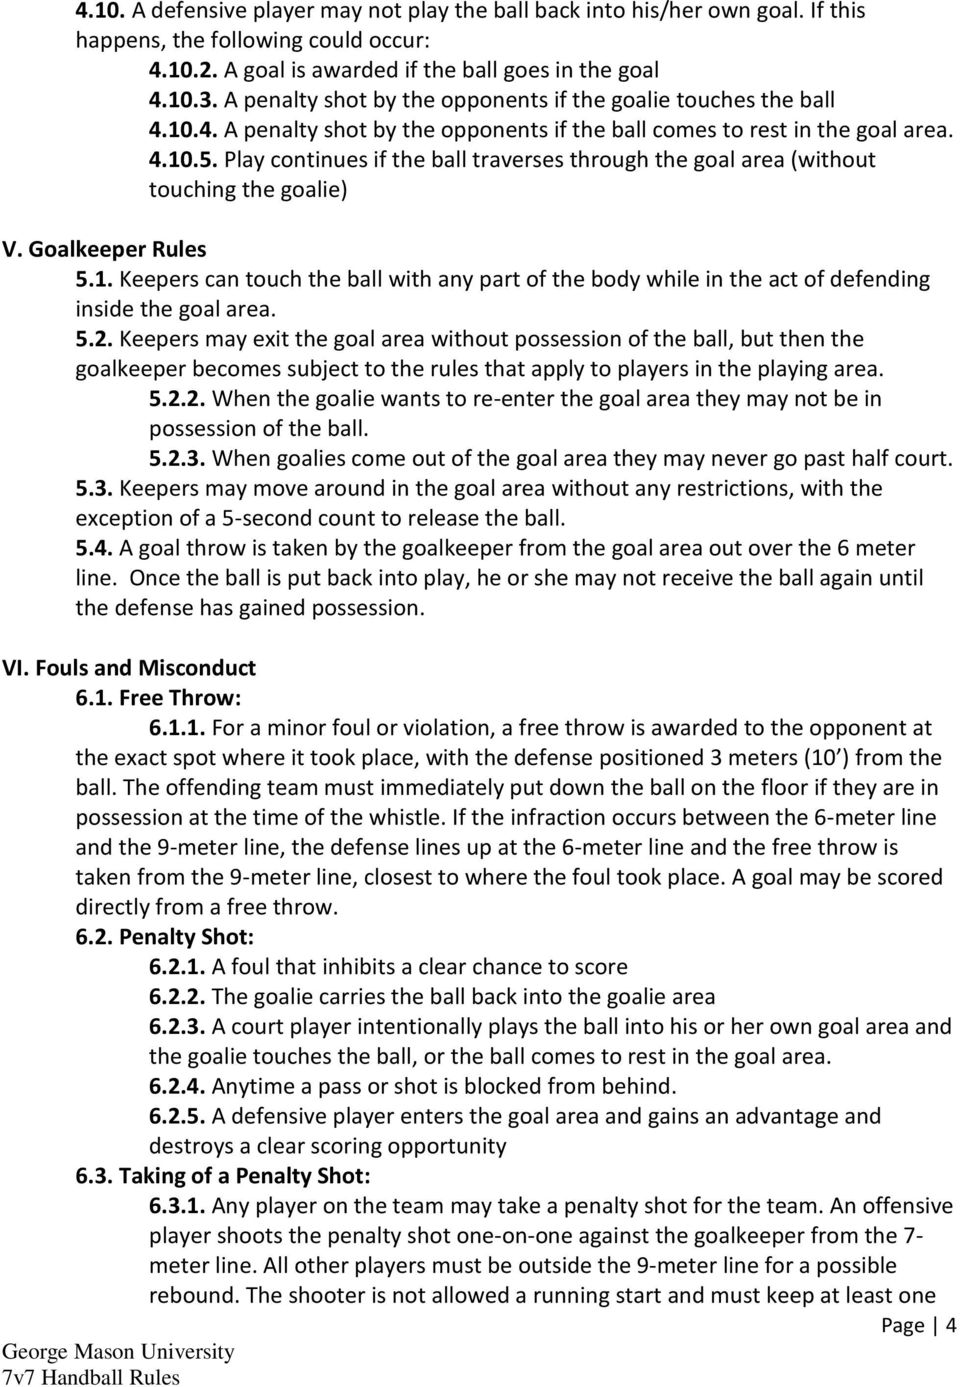 Play continues if the ball traverses through the goal area (without touching the goalie) V. Goalkeeper Rules 5.1.